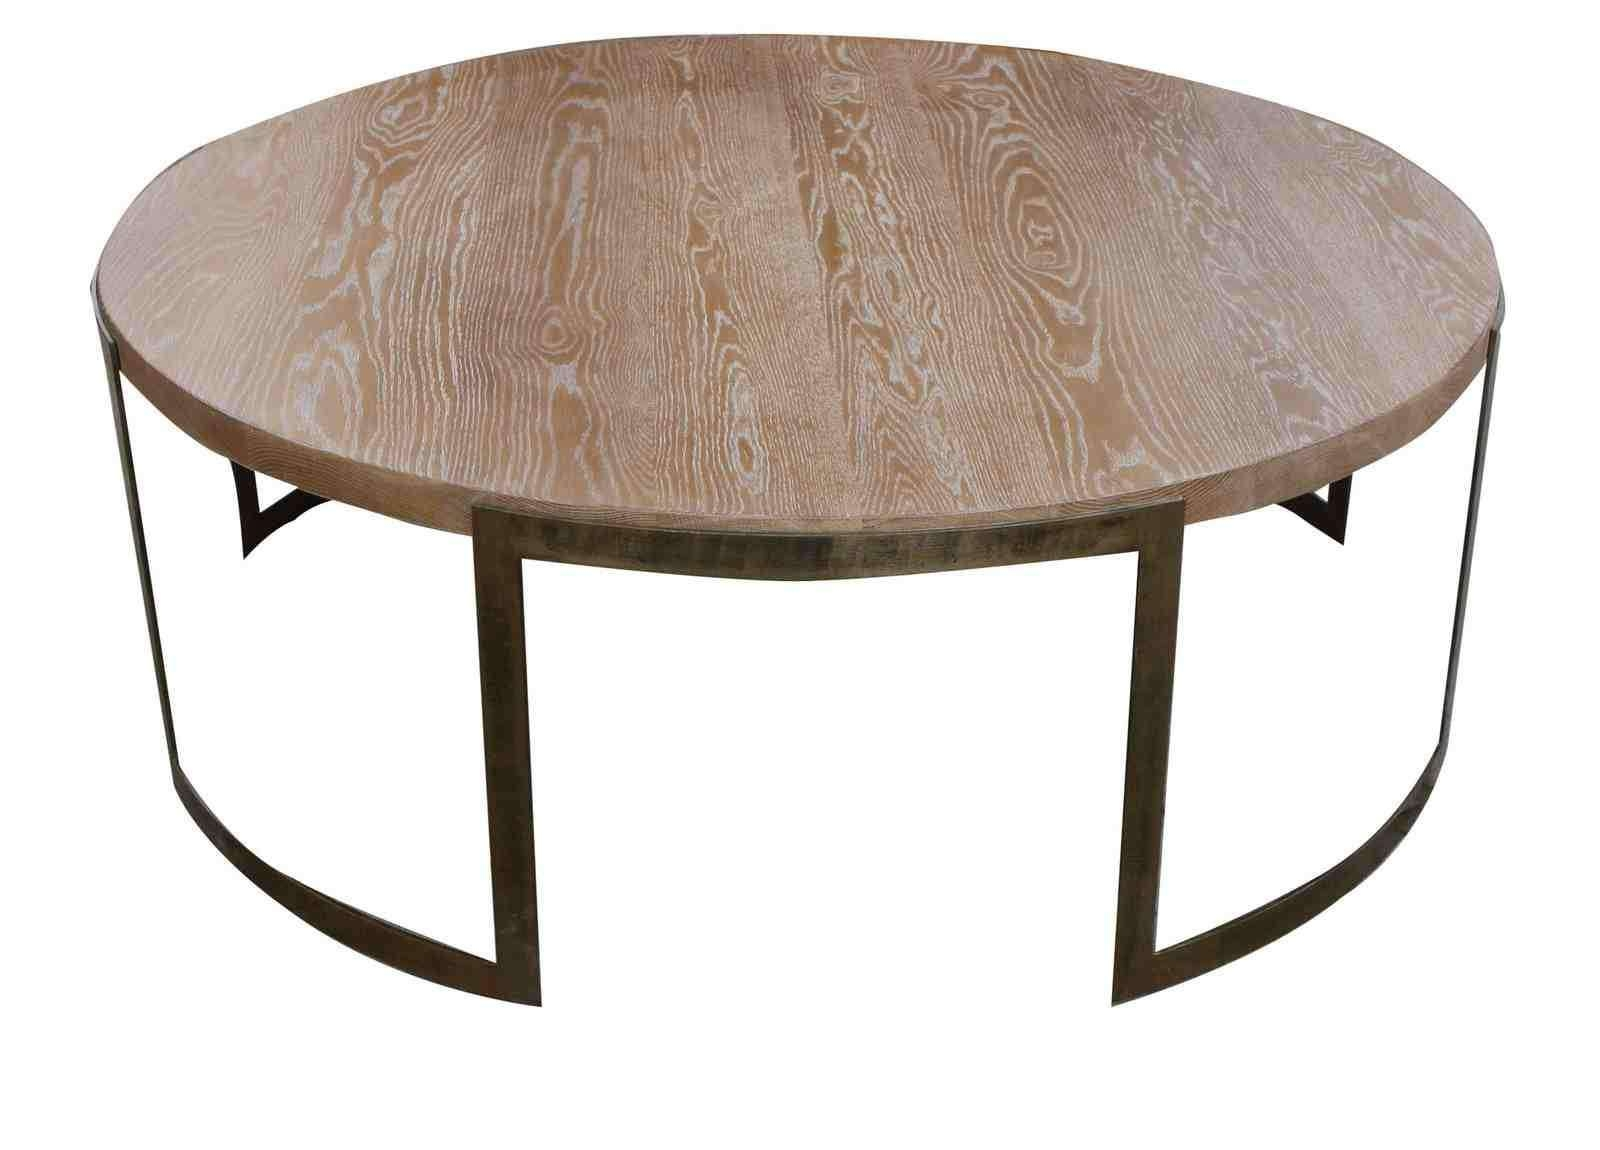 Widely Used Industrial Round Coffee Tables With Regard To Coffee Table: Modern Industrian Coffee Table Metal Industrial (View 18 of 20)